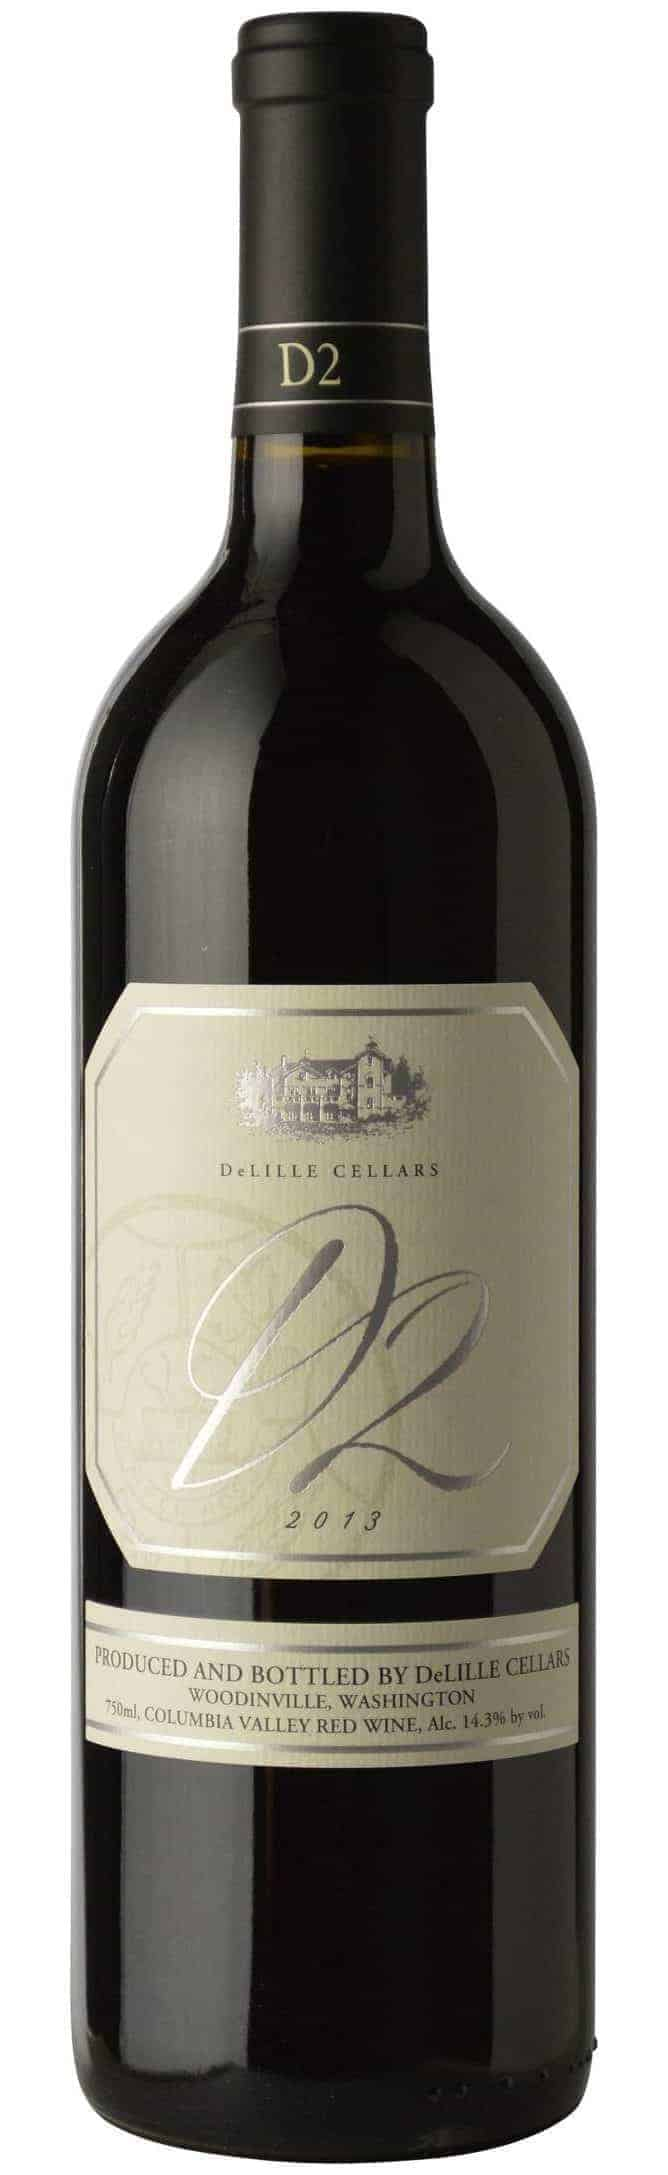 """Delille Cellars 2013 """"D2"""" Columbia Valley"""